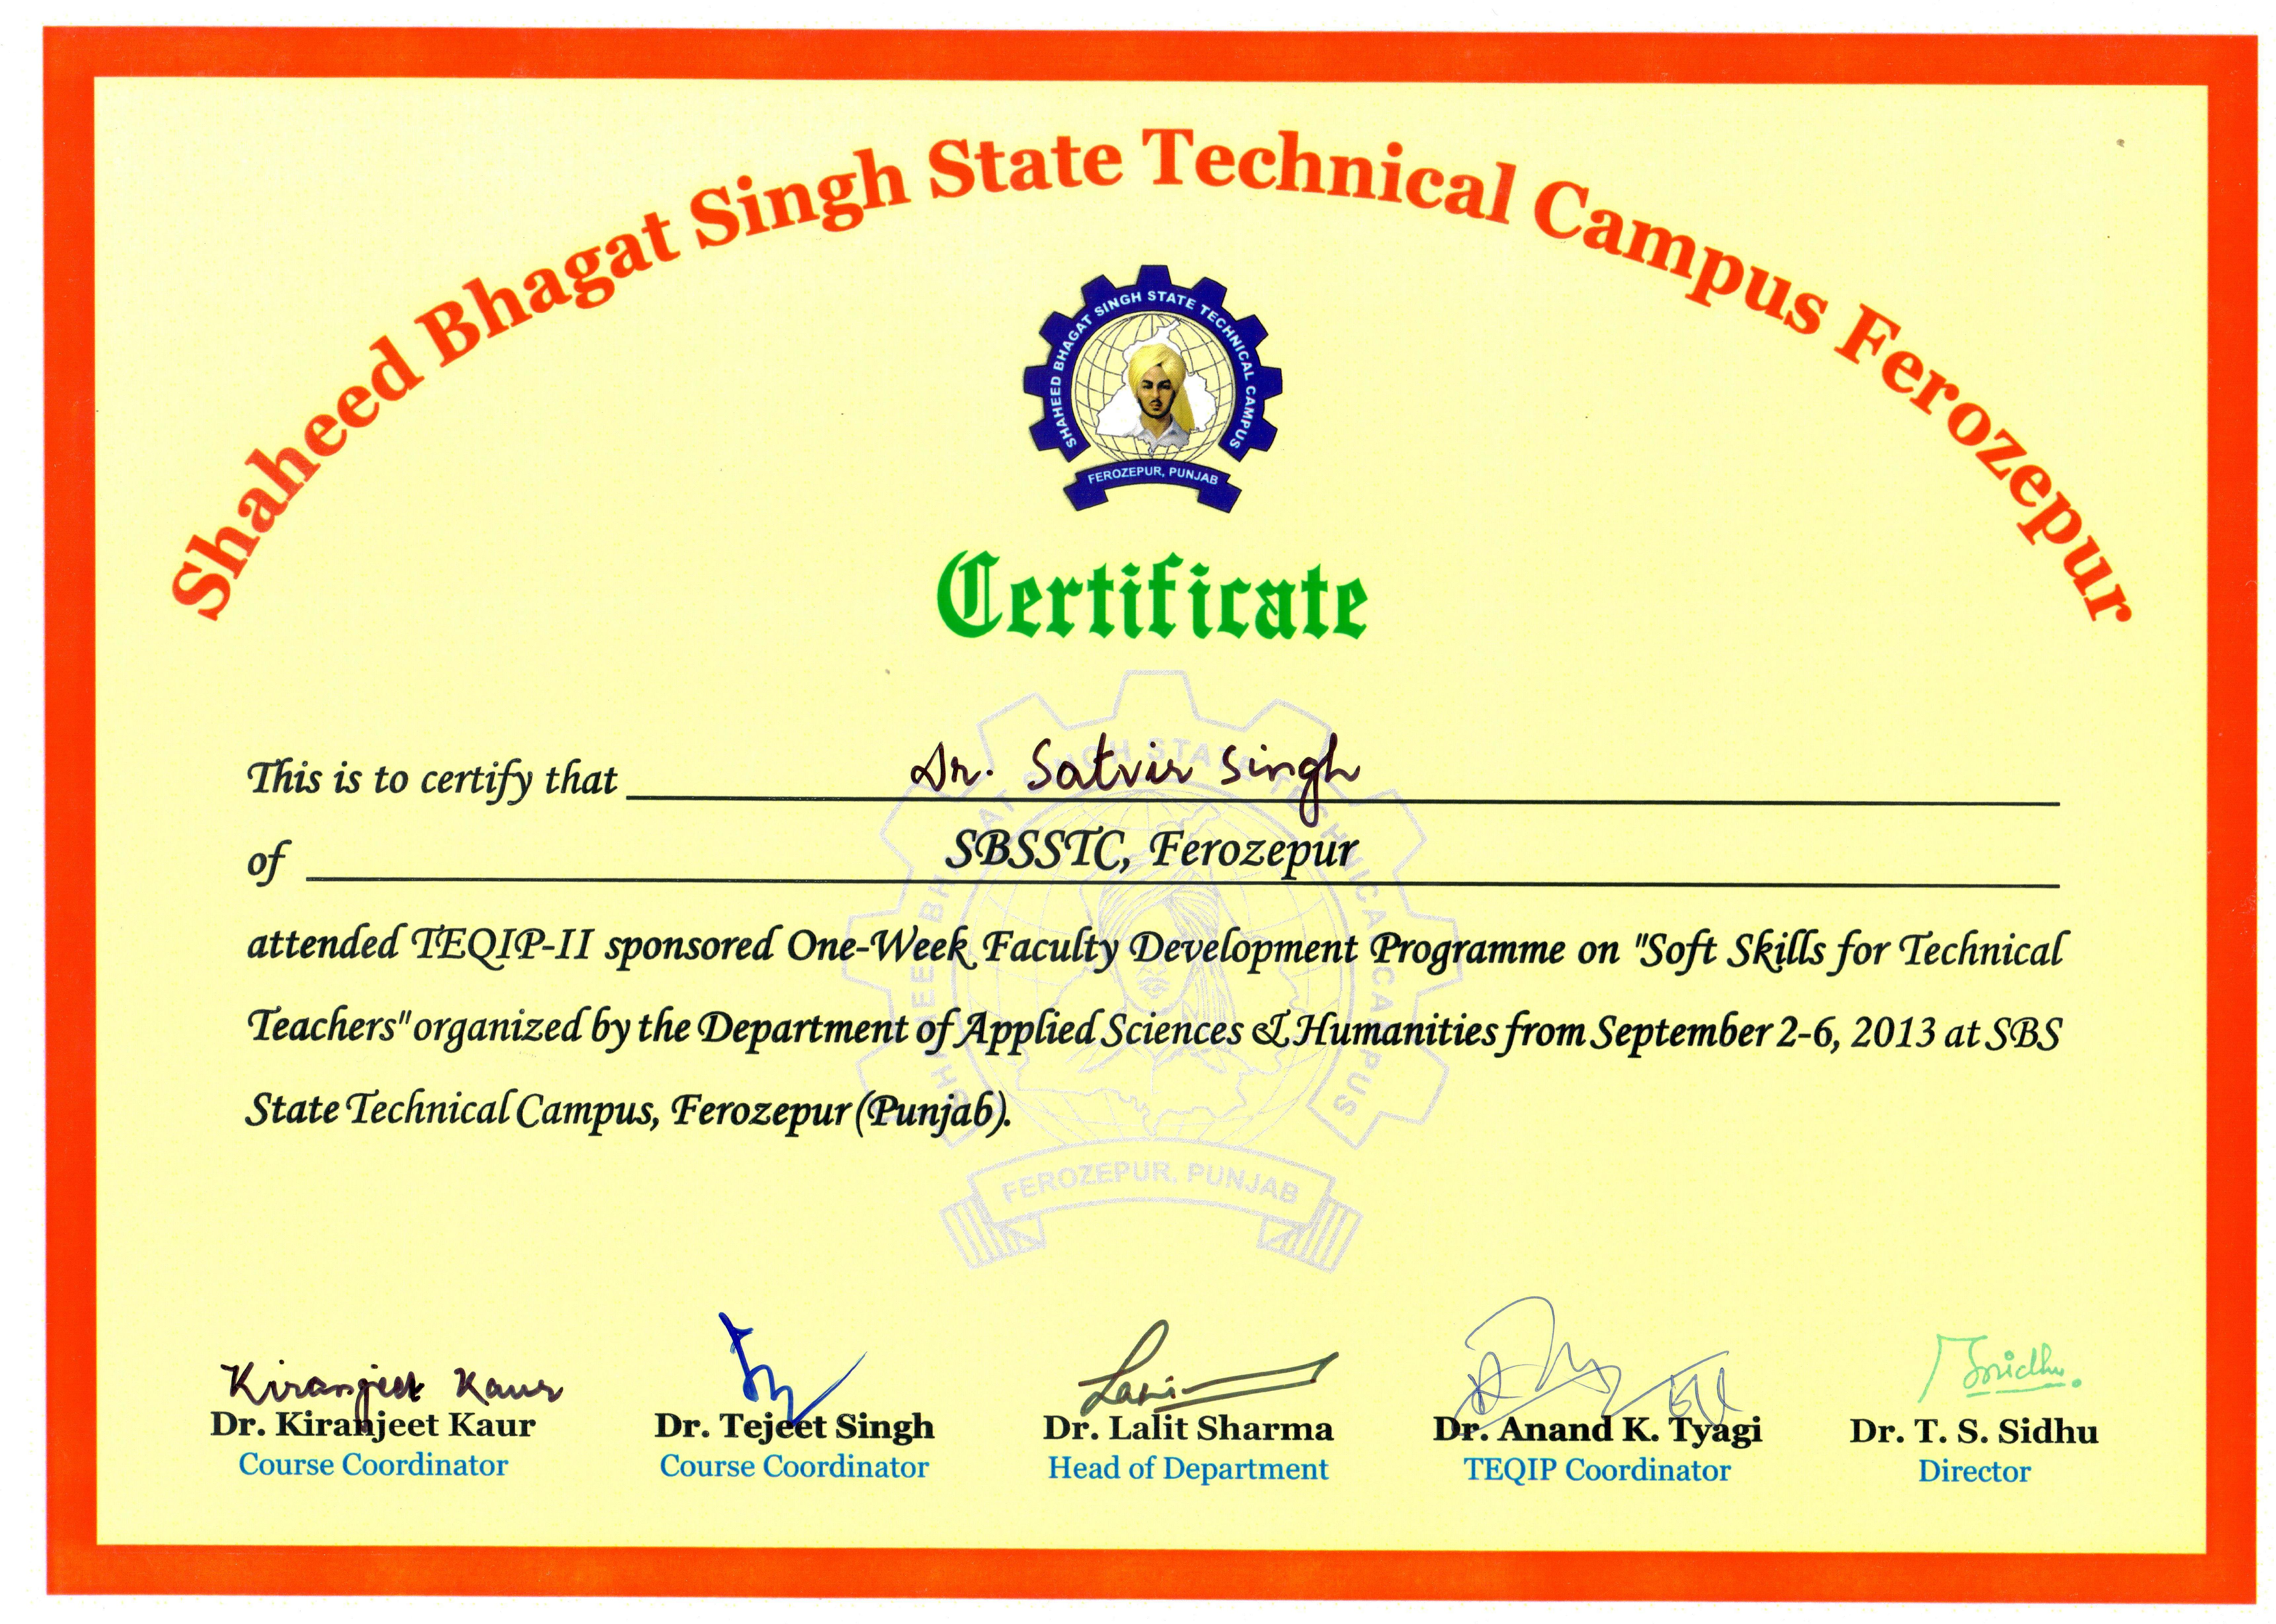 Certificate format for computer course in india gallery dr satvirs personal website pb sep 02 06 yadclub gallery xflitez Gallery